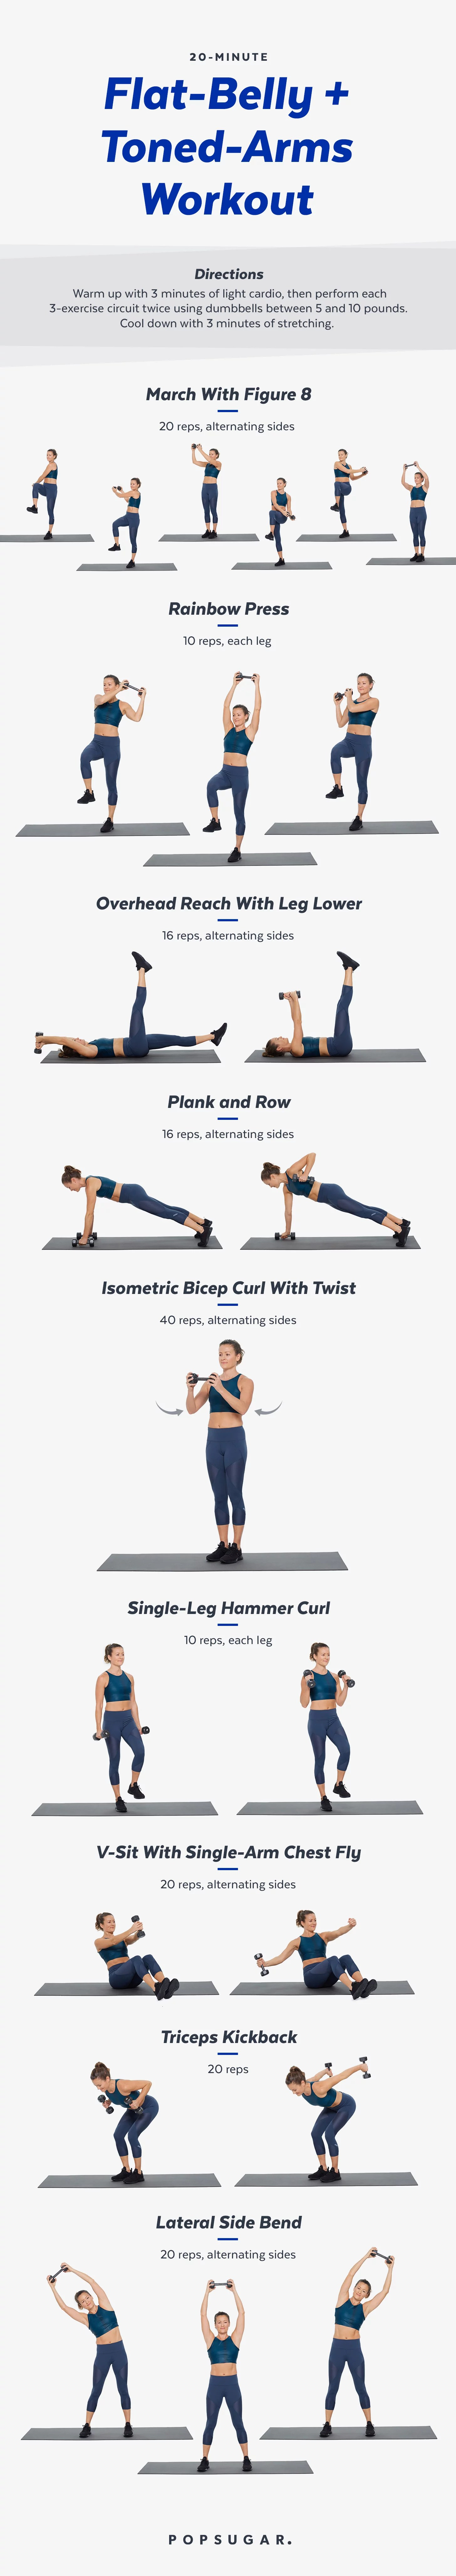 20 Minute Arms And Abs Workout With Weights